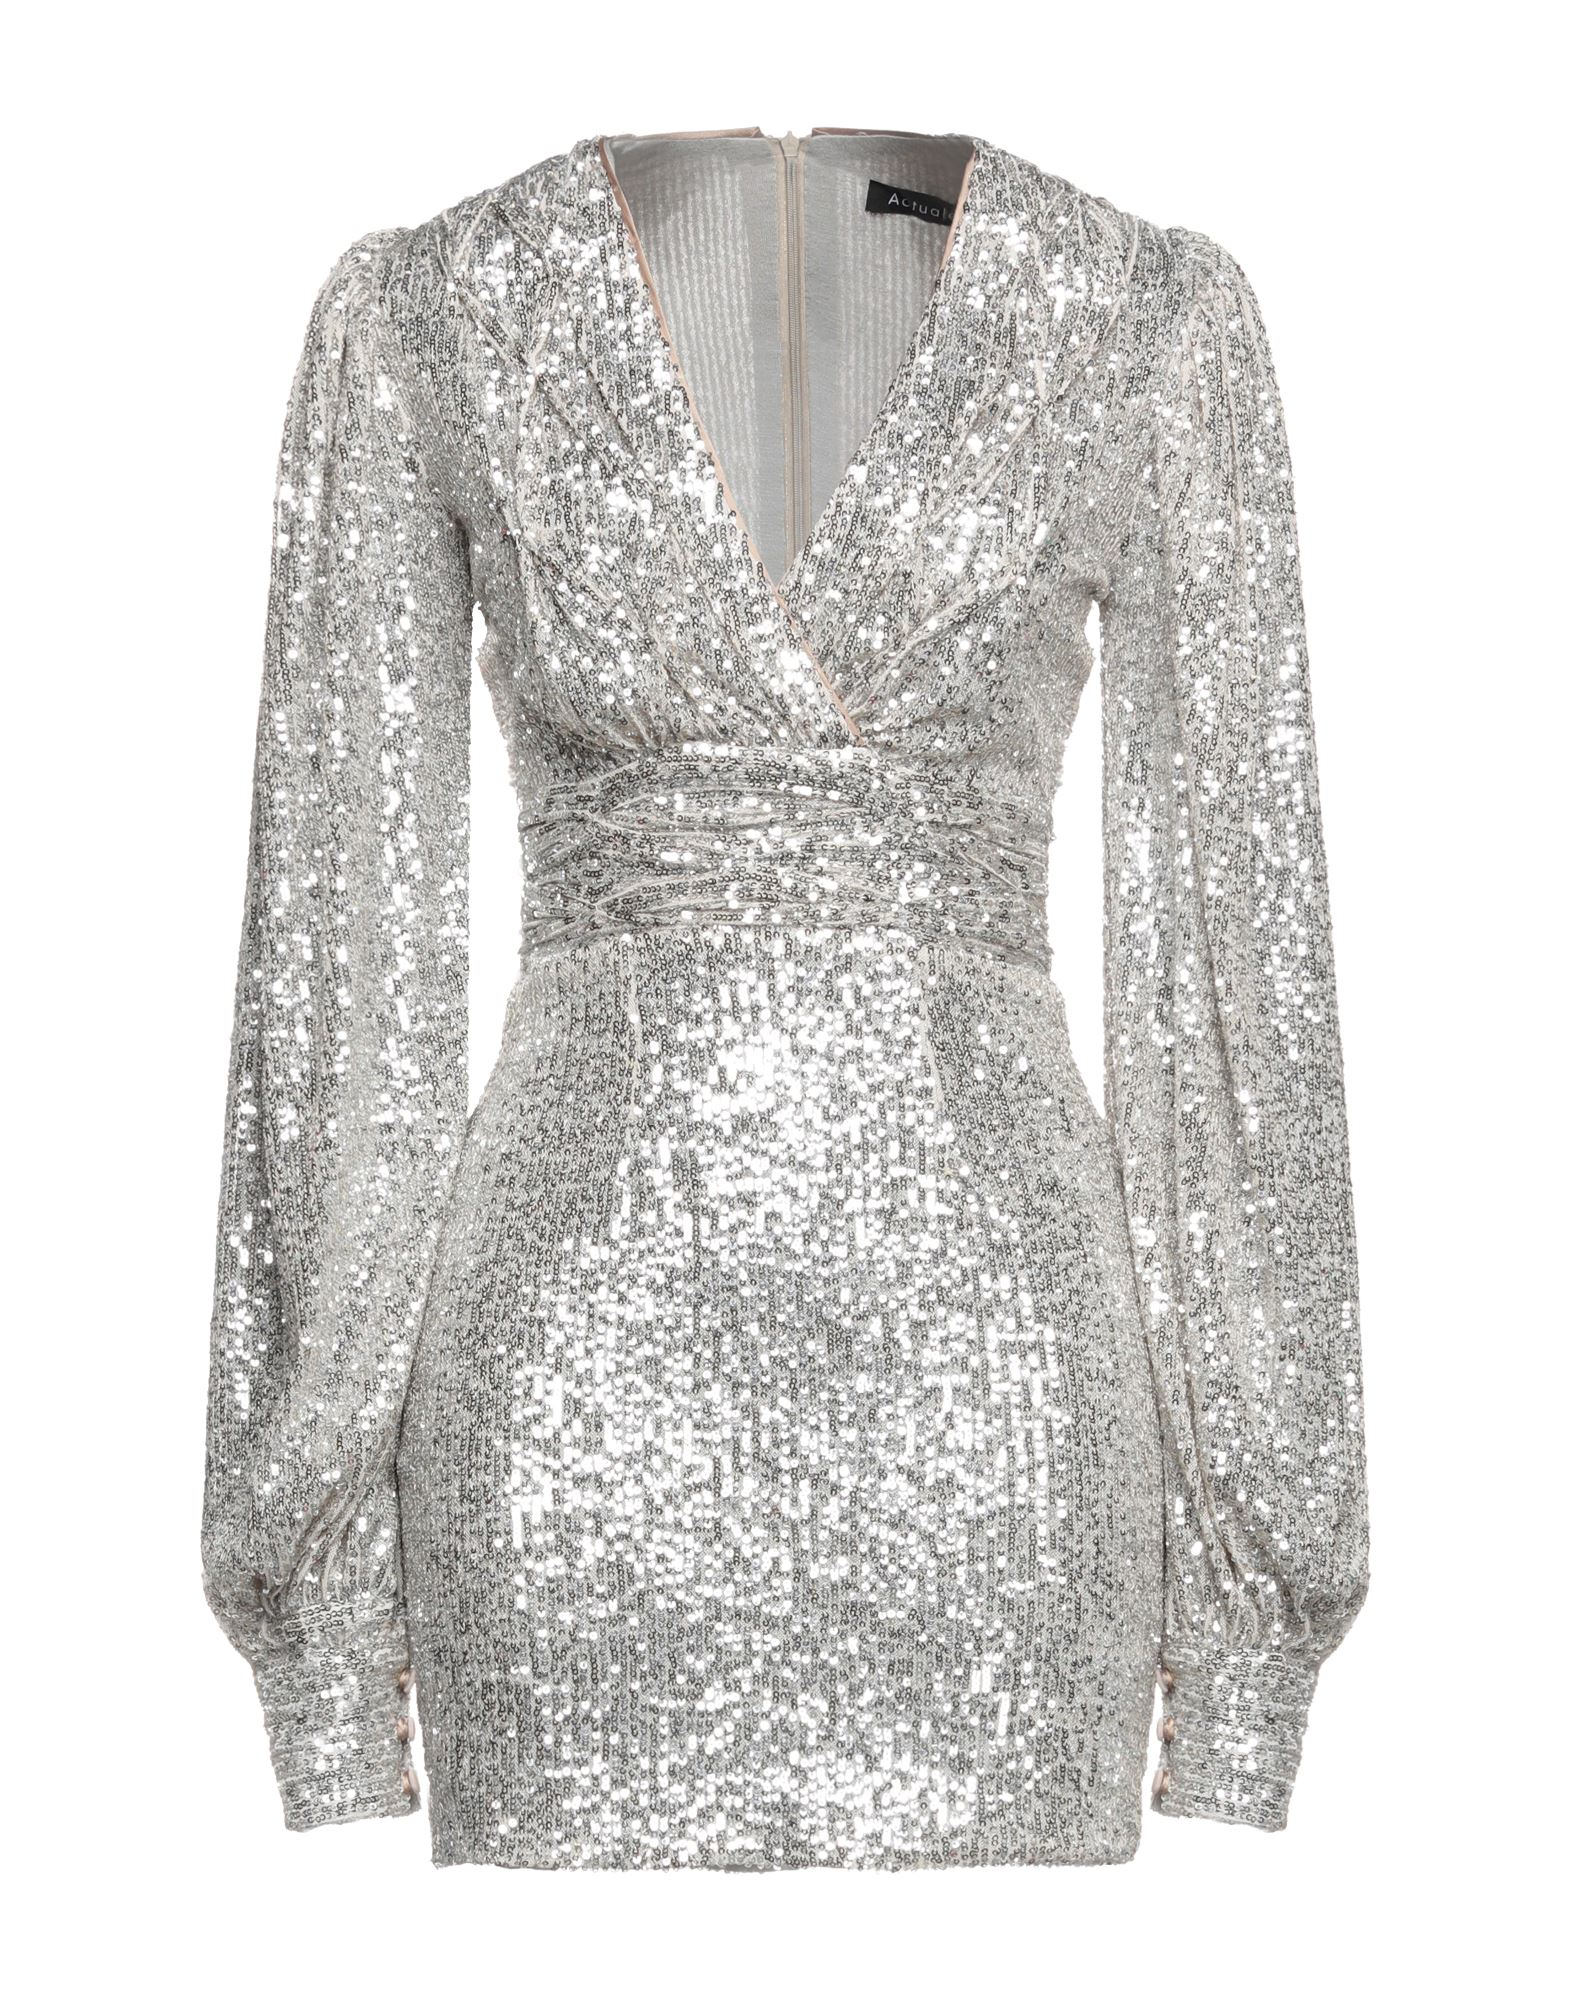 Actualee Short Dresses In Silver